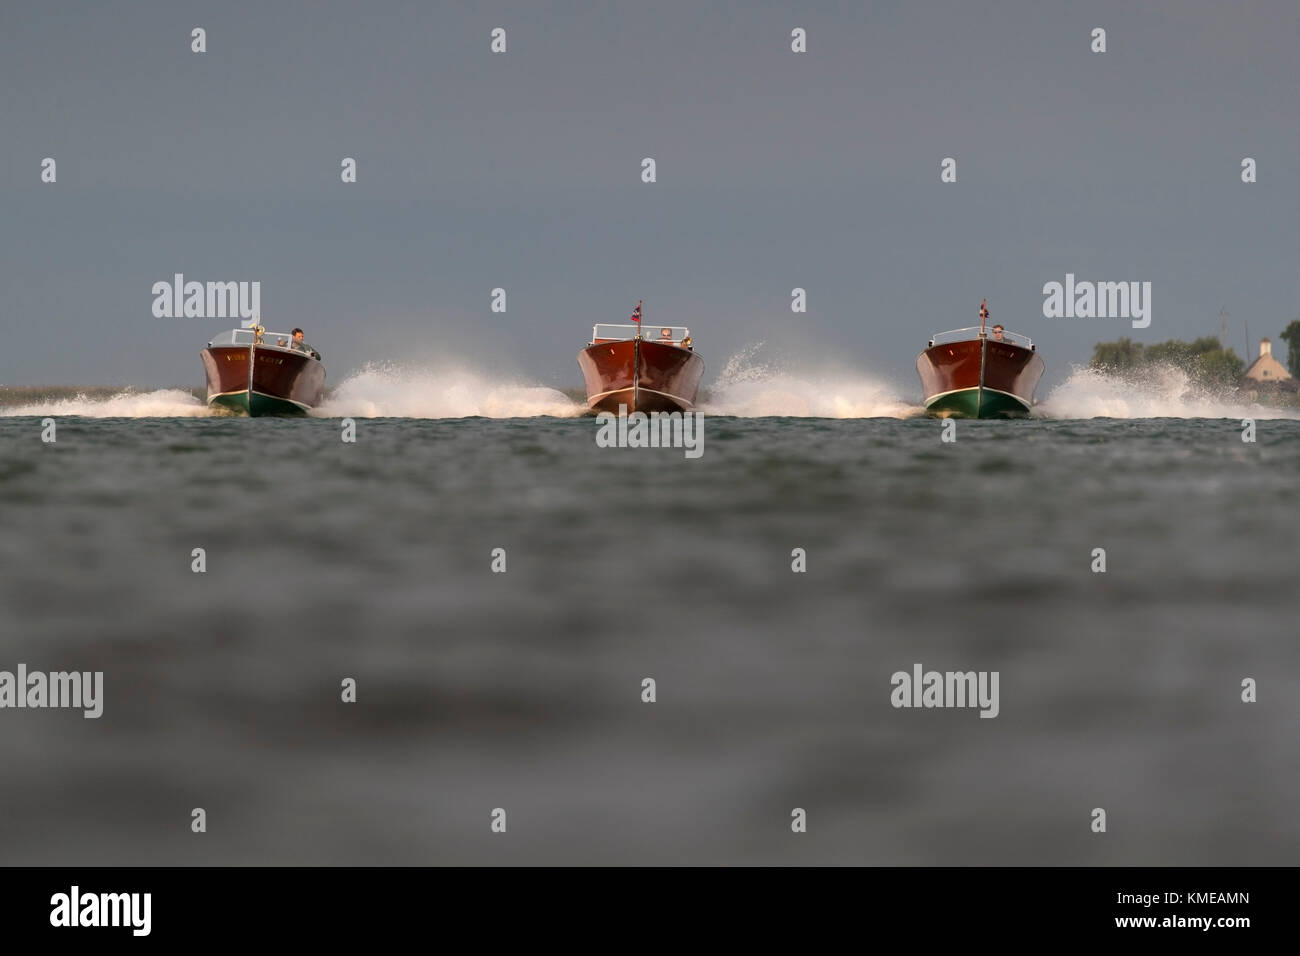 Three wooden speedboats approaching in formation. - Stock Image